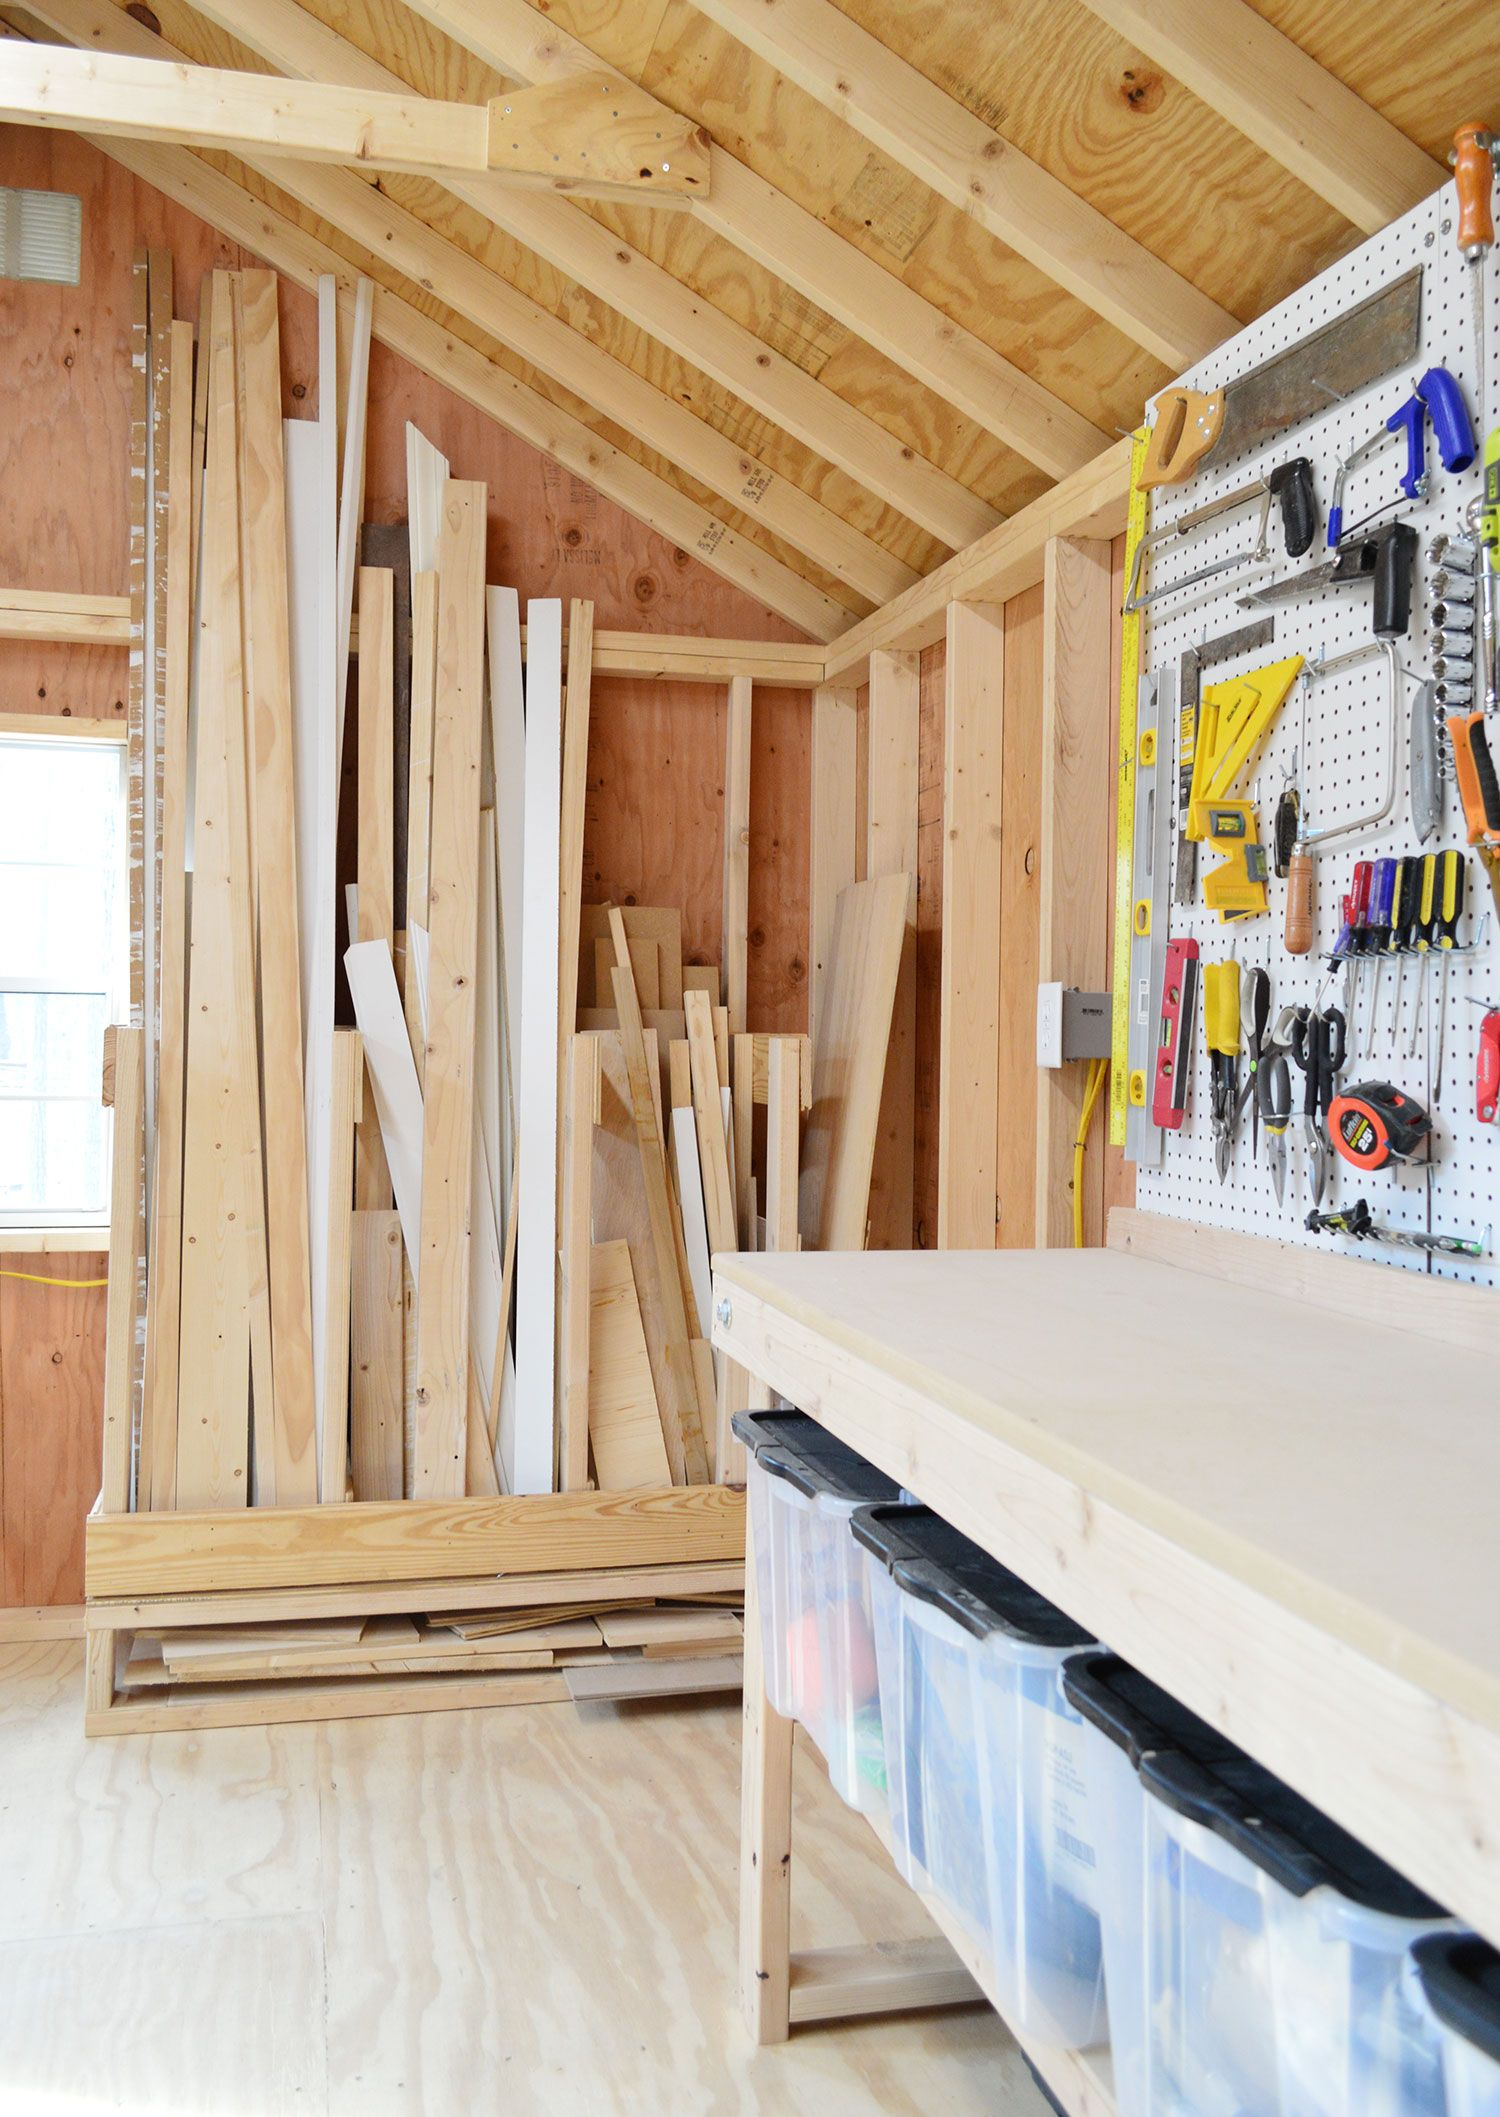 4 Shed Storage Ideas For Tons Of Added Function Shed